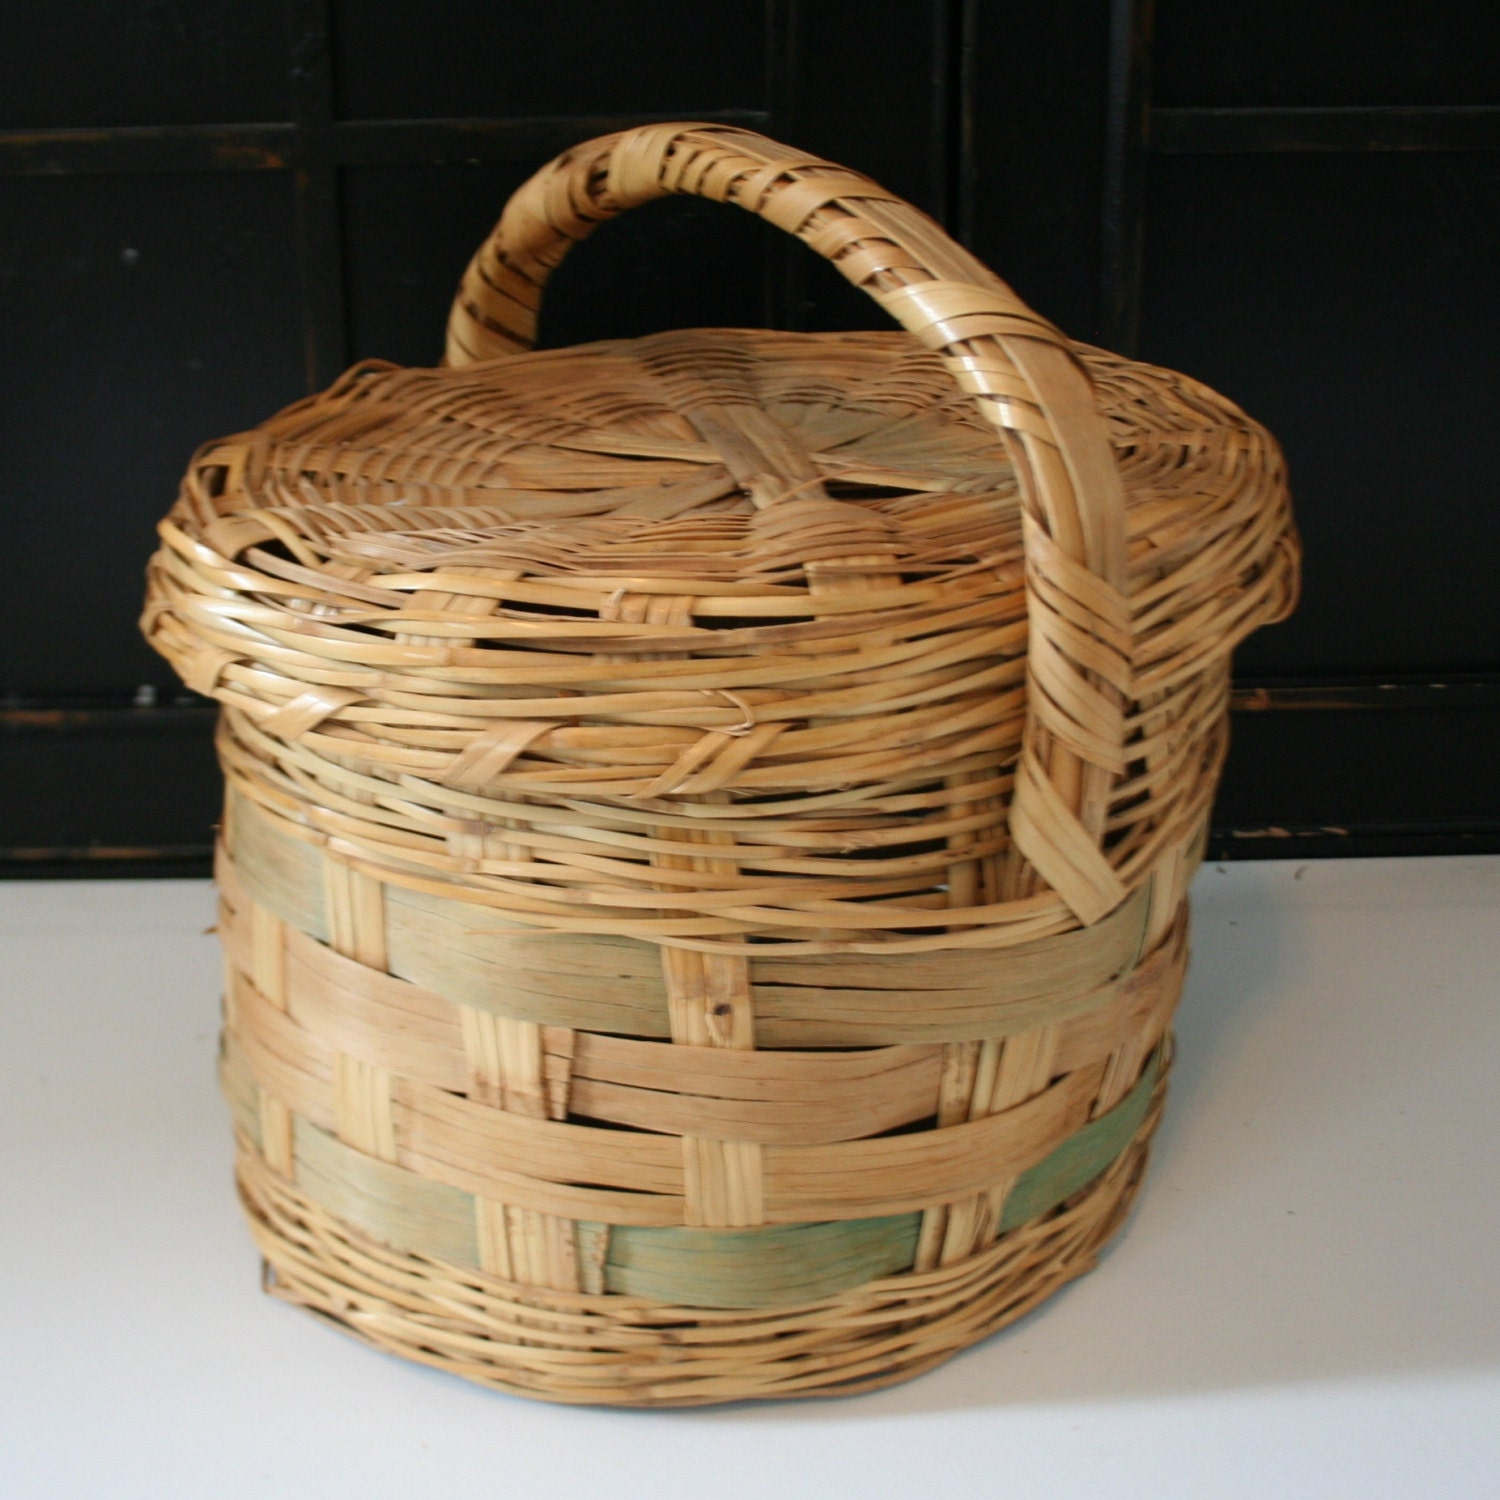 items similar to vintage large woven wicker basket with lid on etsy. Black Bedroom Furniture Sets. Home Design Ideas